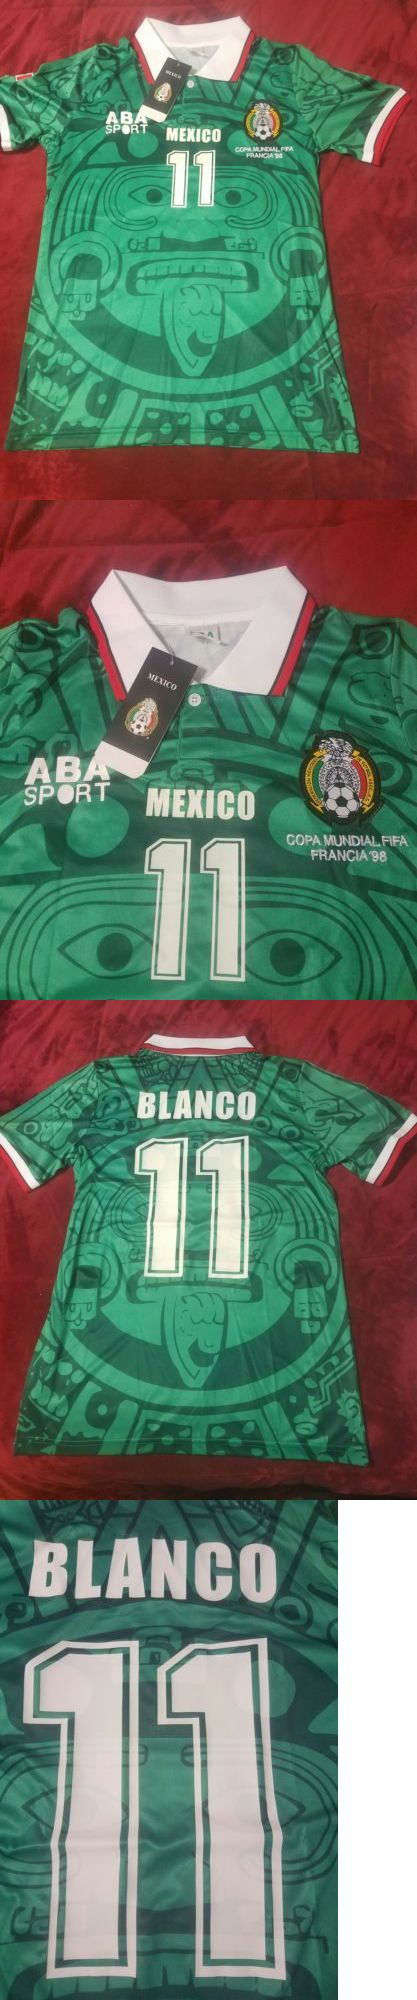 Soccer-National Teams 2891: Mexico Cuauhtemoc Blanco Small Jersey -> BUY IT NOW ONLY: $45 on eBay!